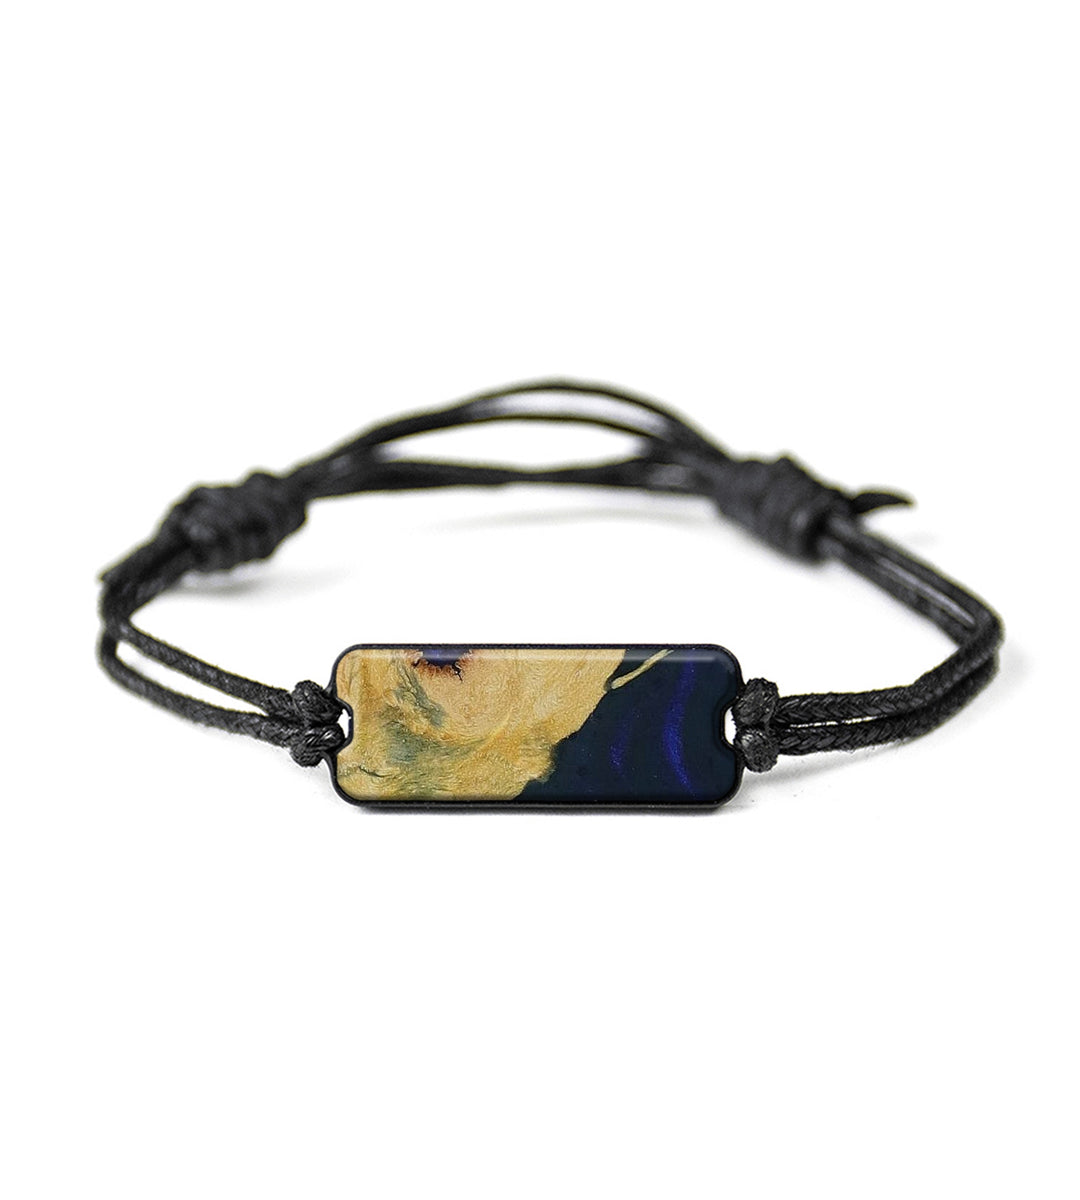 Classic Wood+Resin Bracelet - Ineke (Dark Blue, 417018)